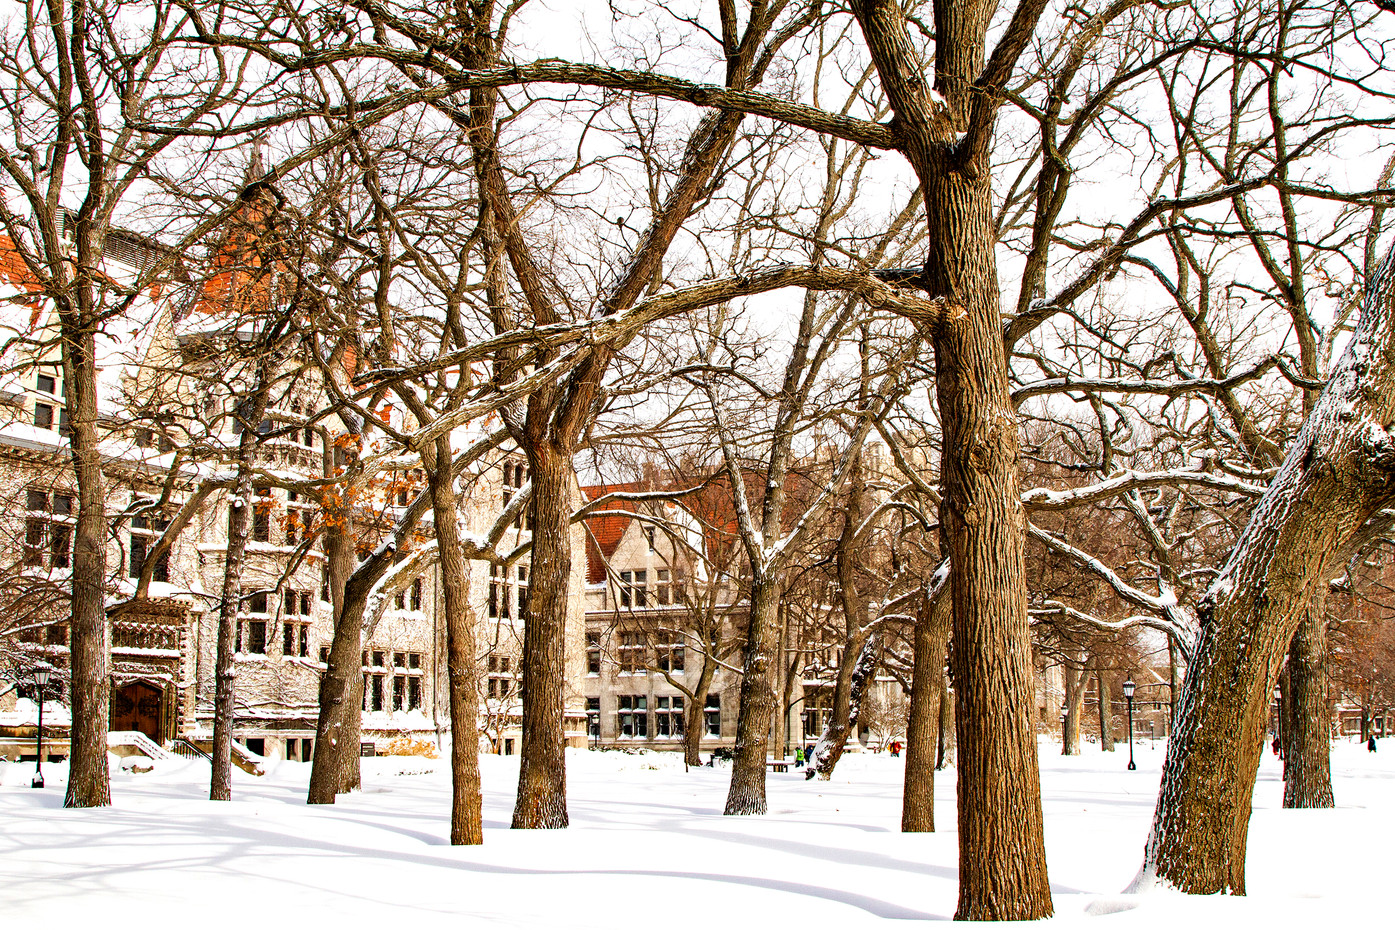 University of Chicago in winter, USA